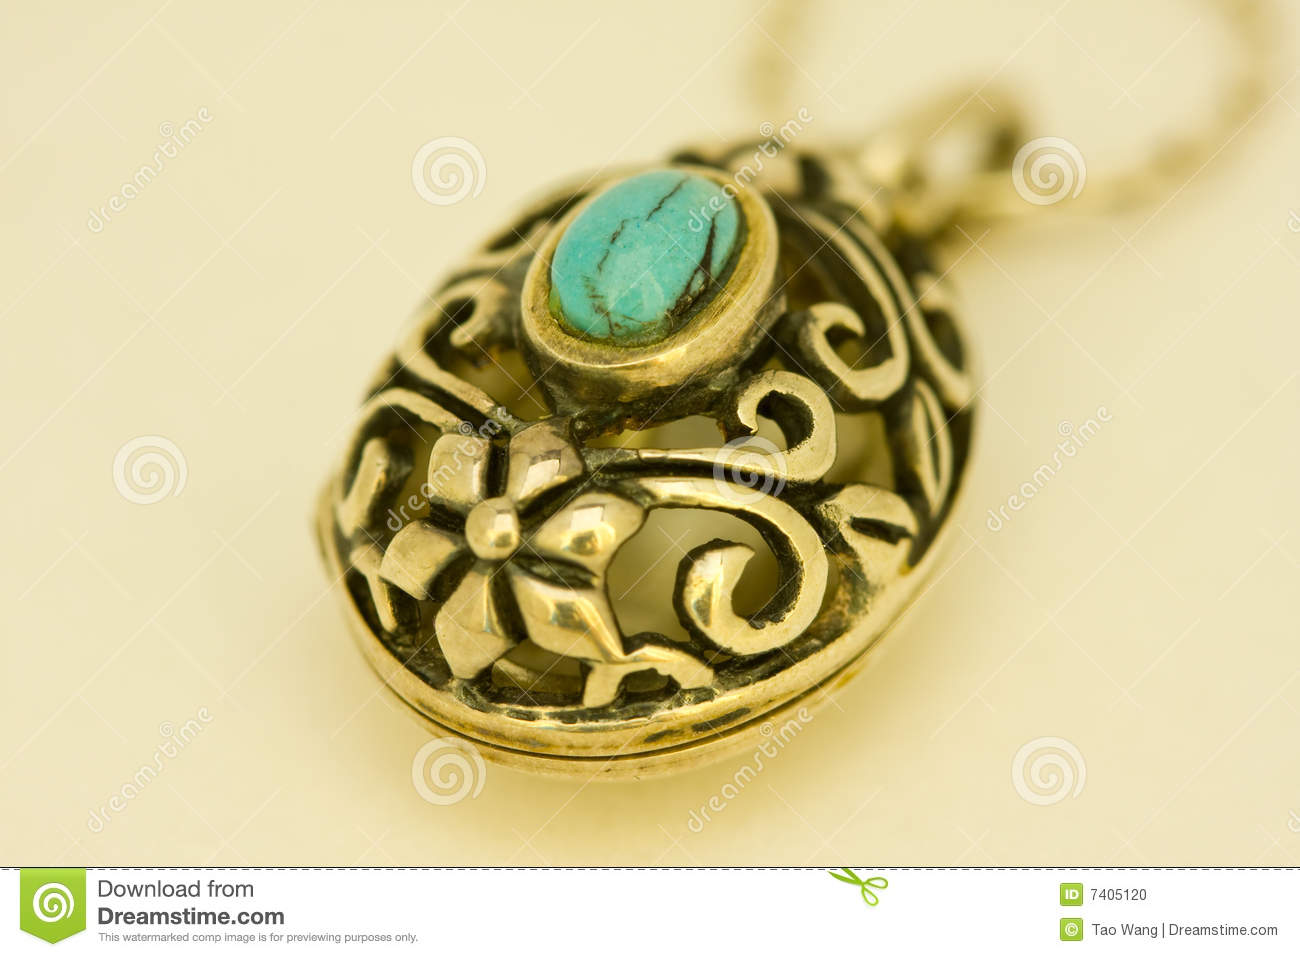 Voodoo amulet royalty free stock photos image 2718528 - Amulet Stock Photo Amulet Amulet Royalty Free Stock Images